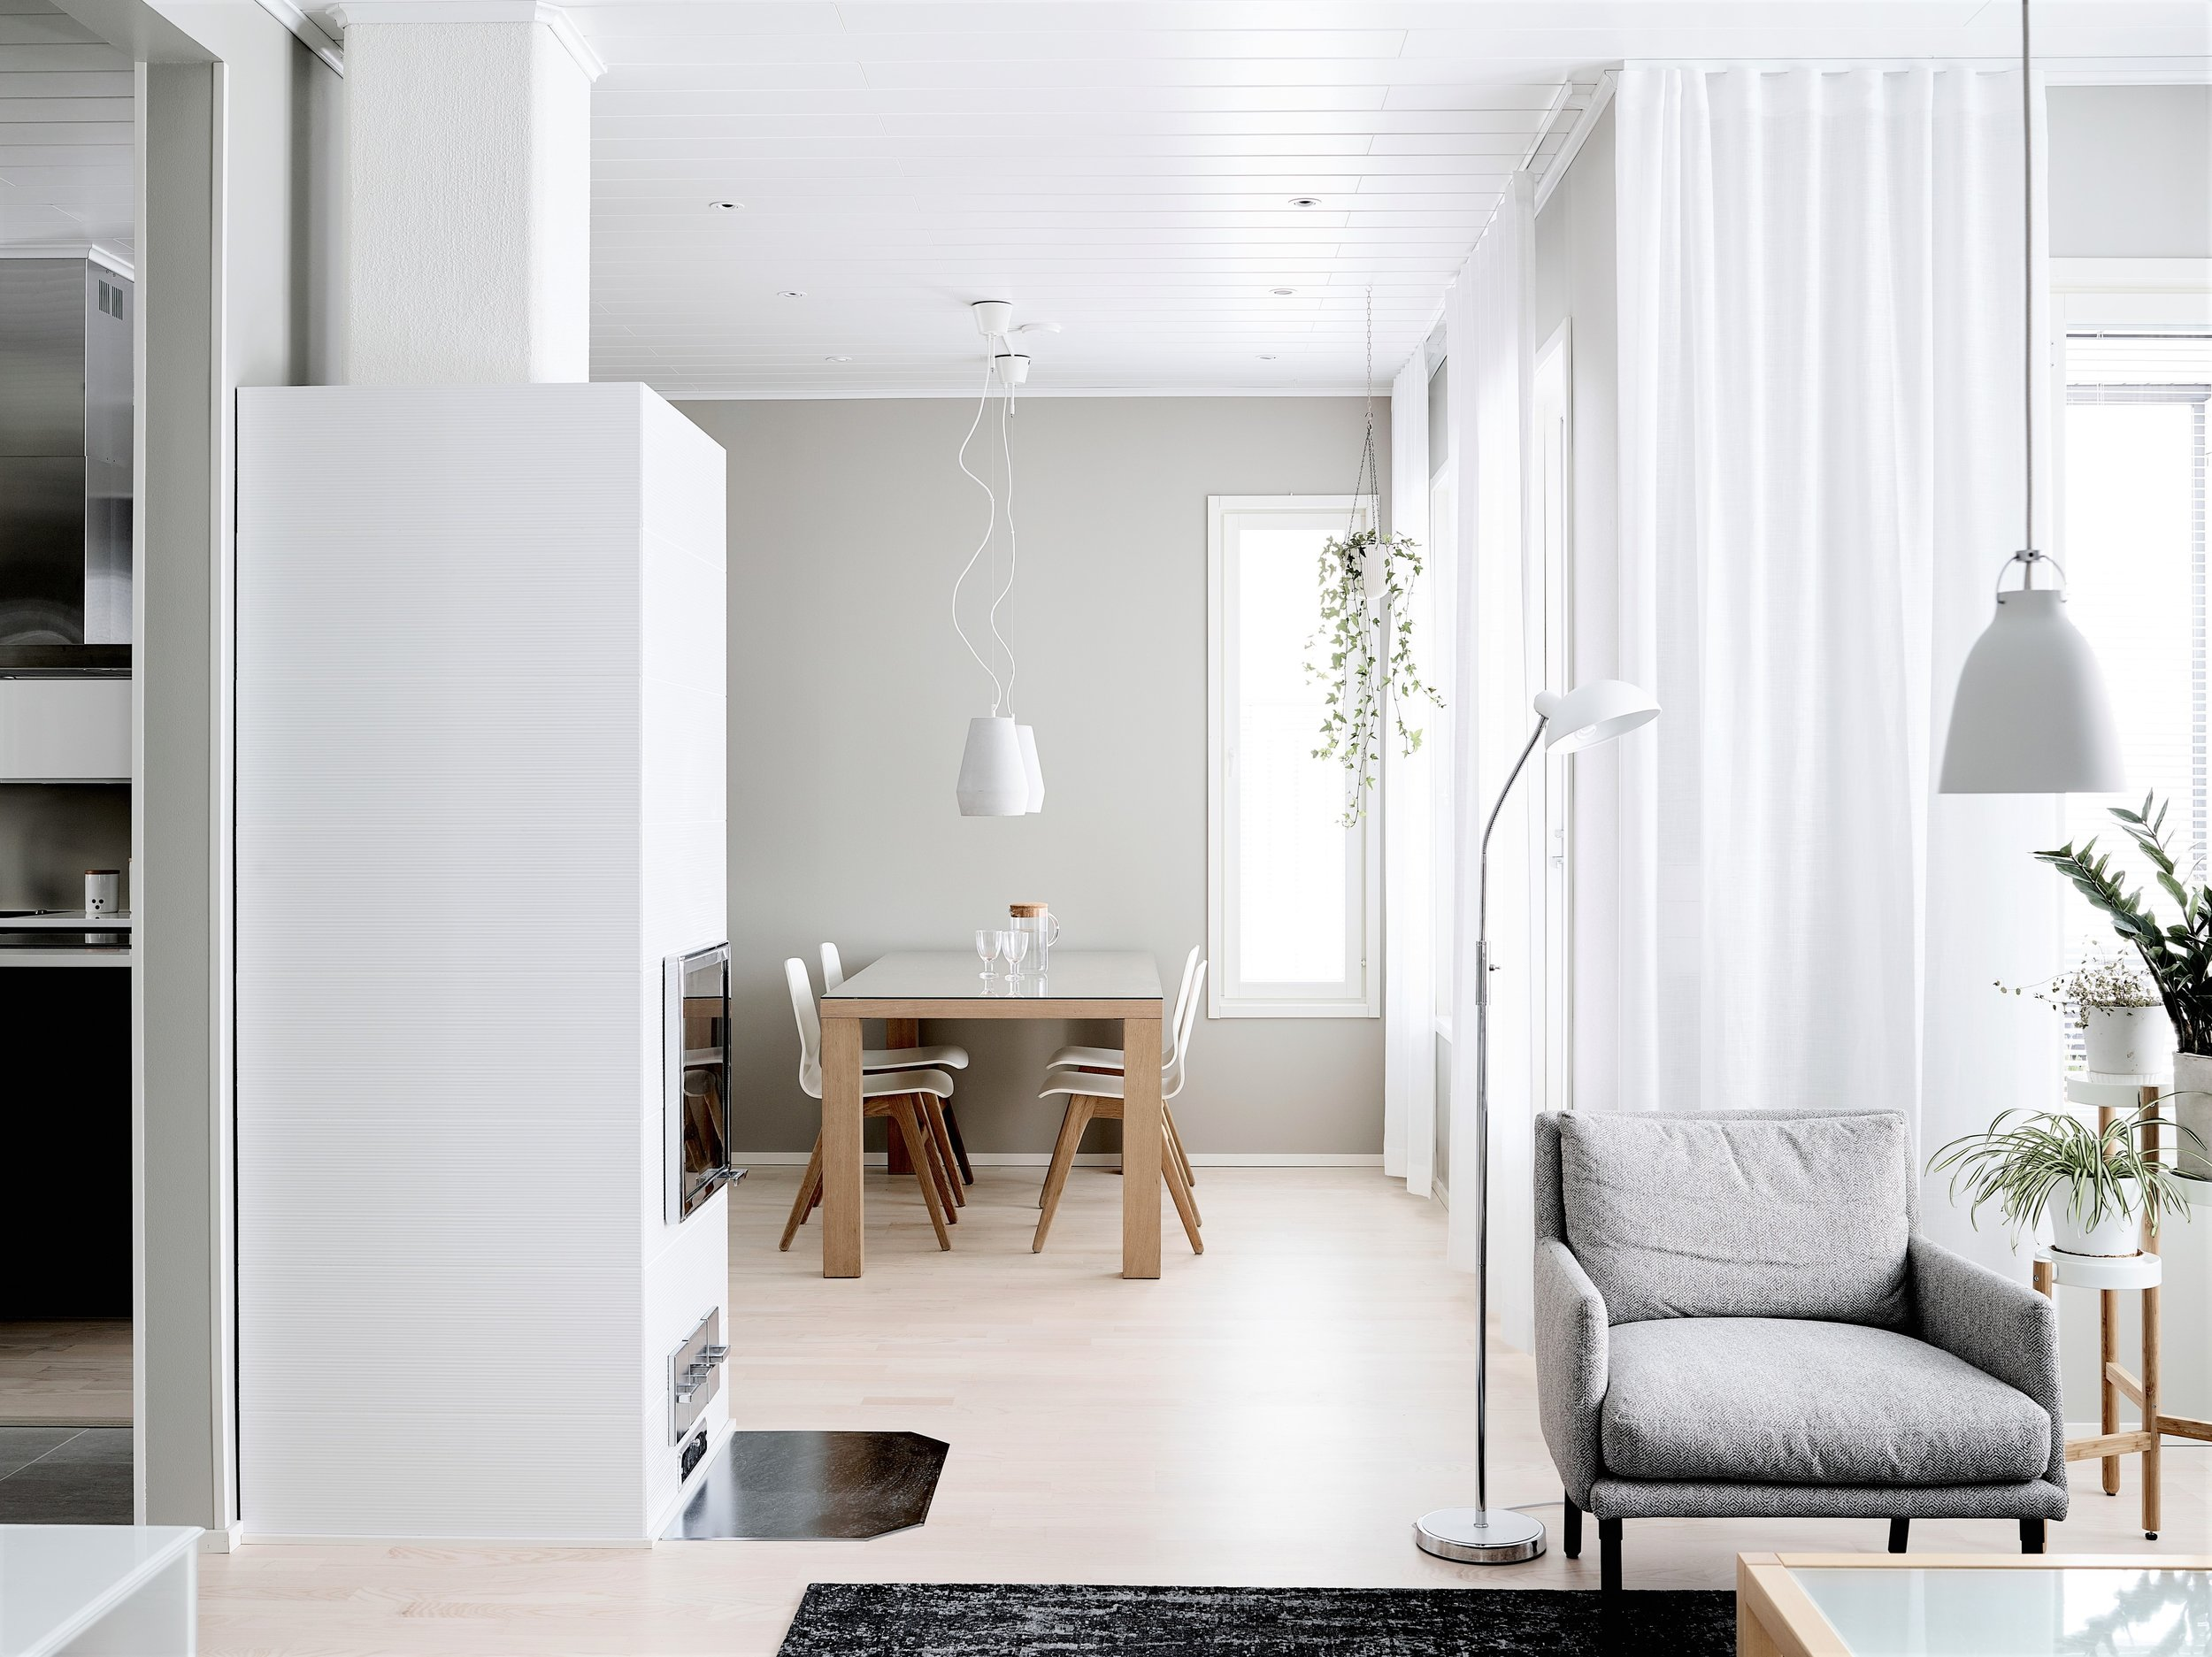 interior-anna-koponen-photo-krista-keltanen-05.jpg